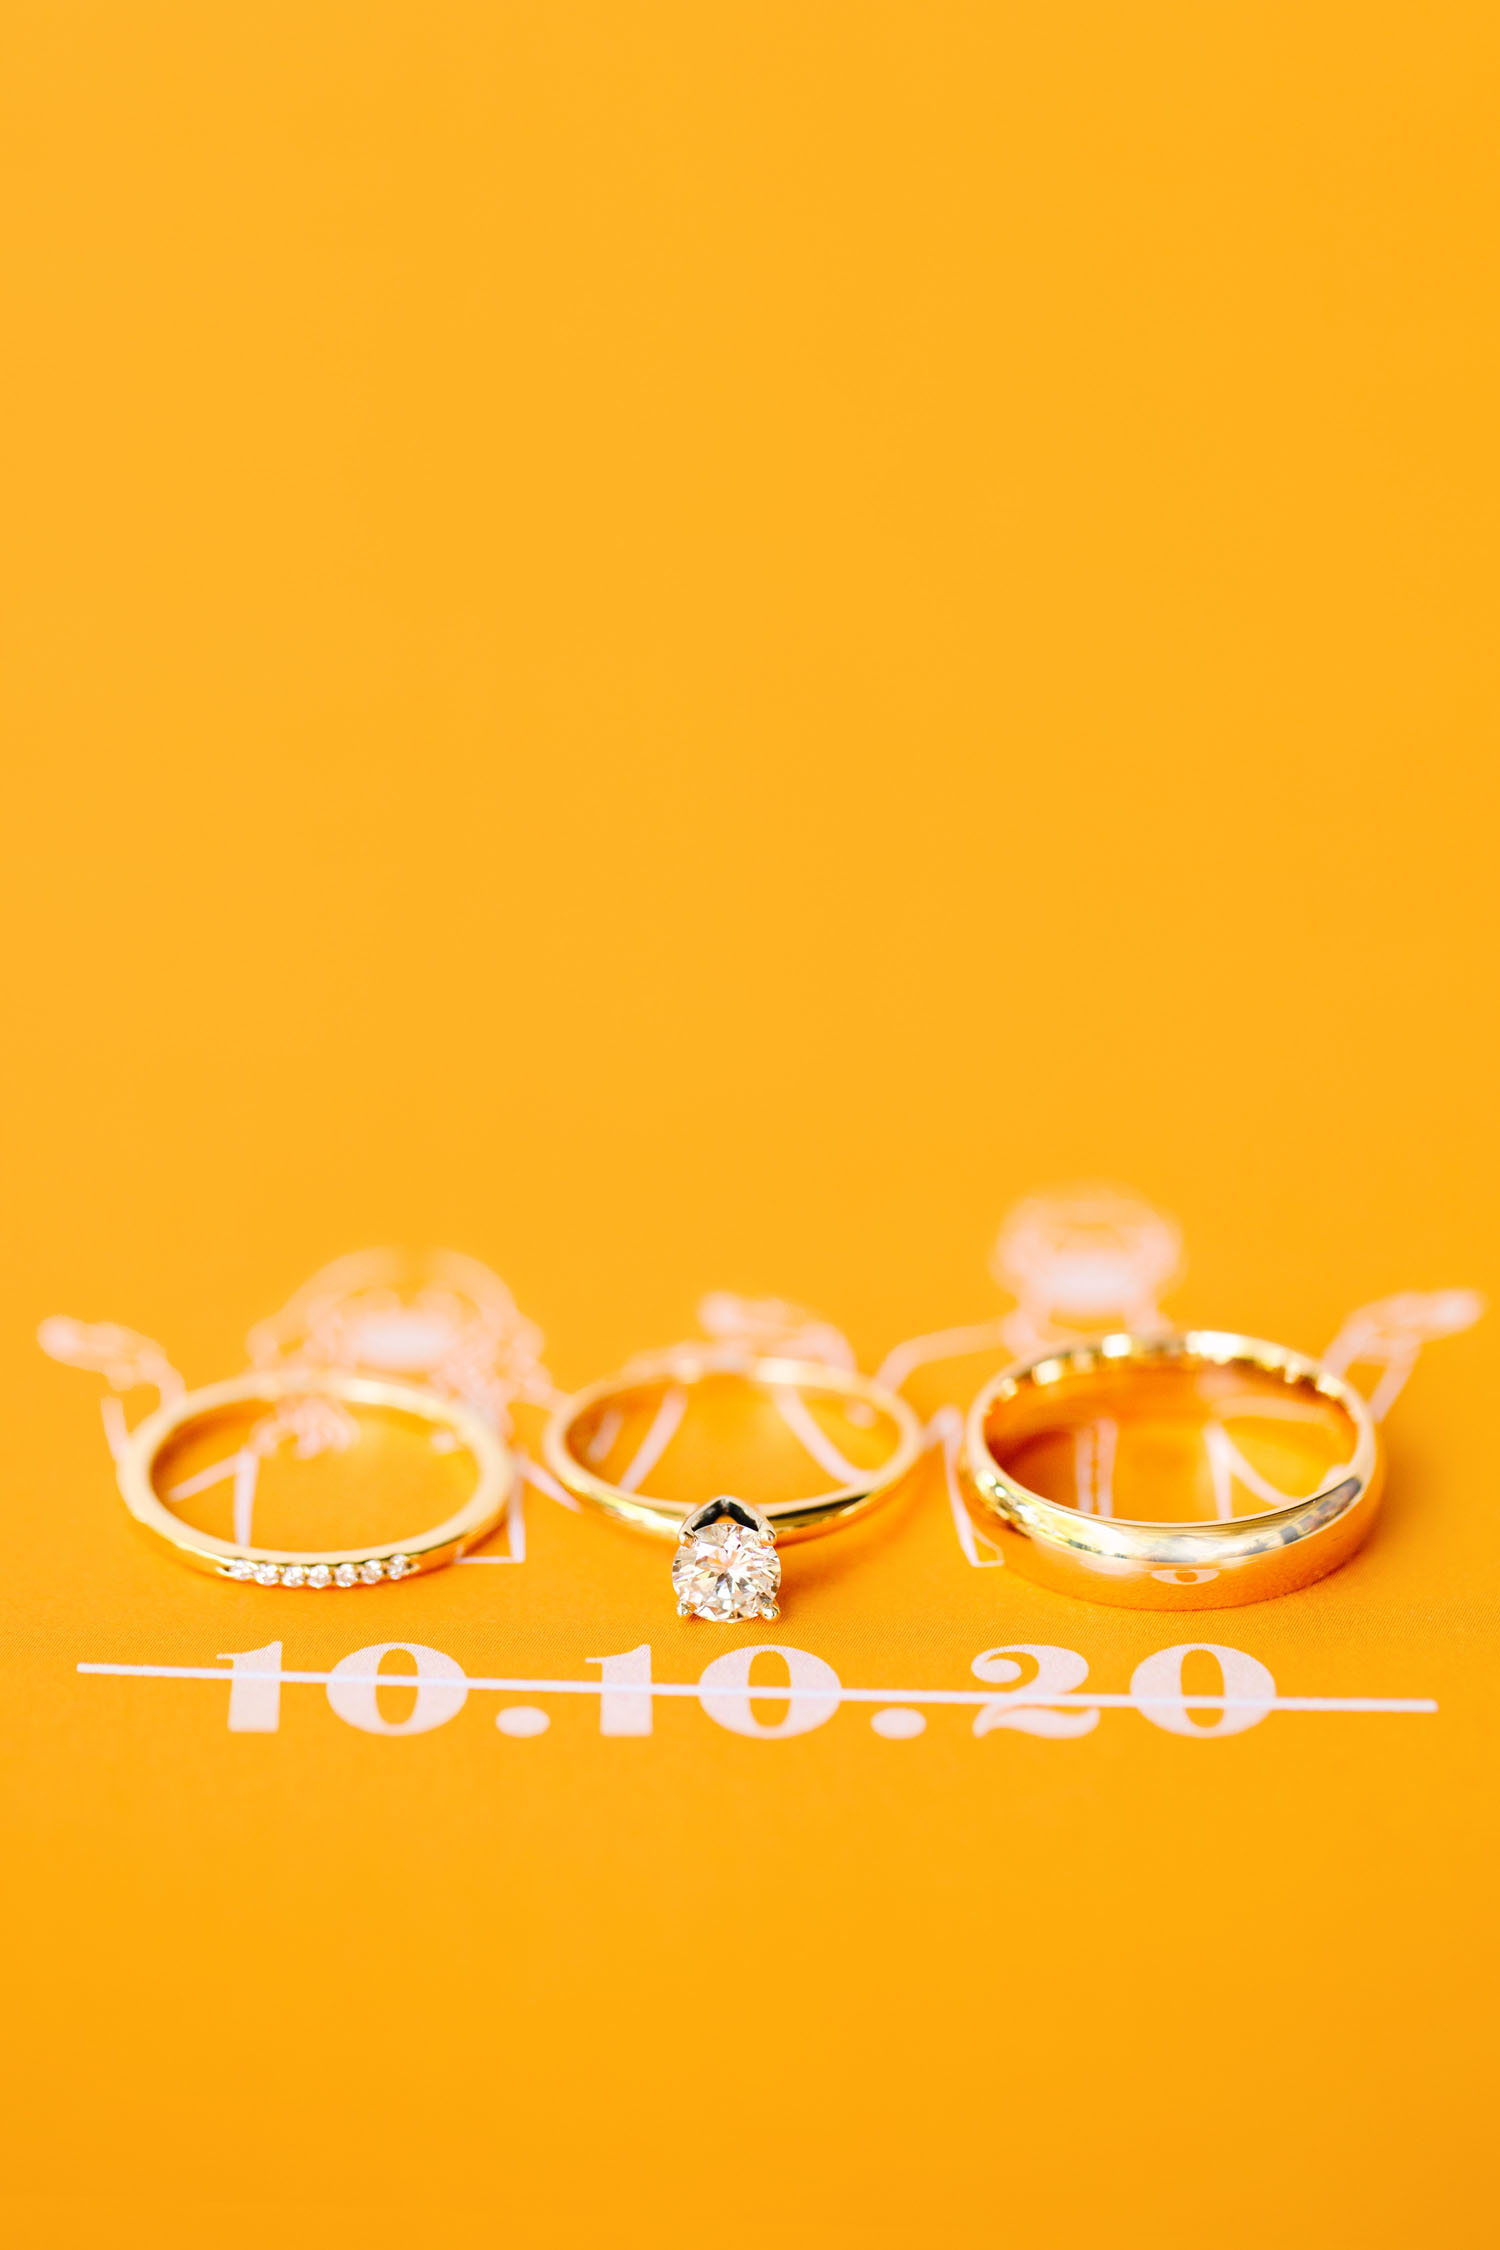 solitaire engagement ring sitting on a colorful yellow wedding invitation